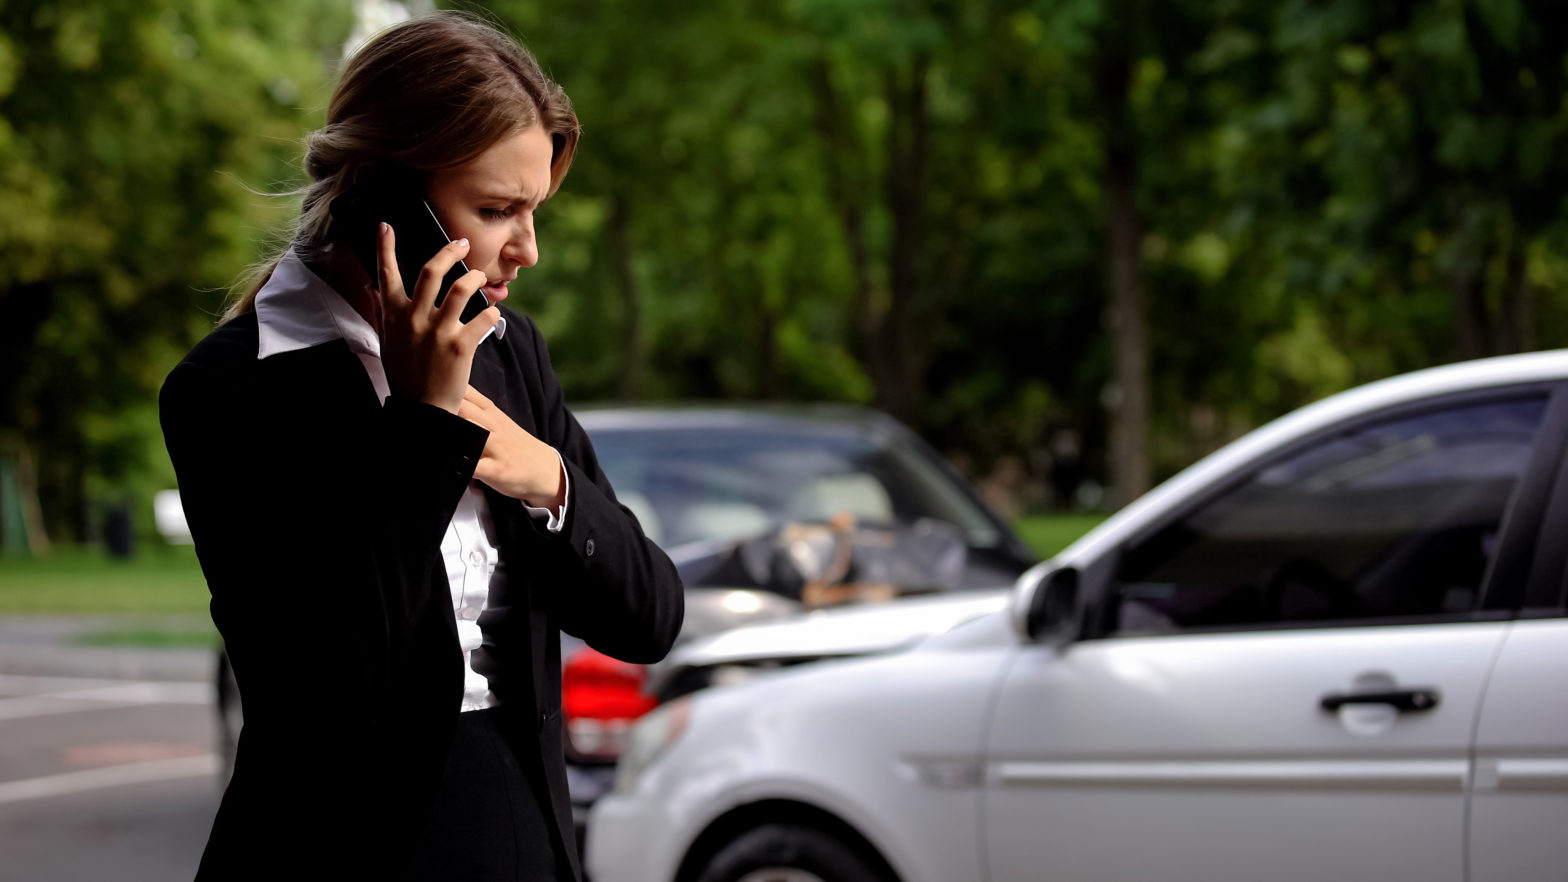 A woman calling Personal Injury Attorneys